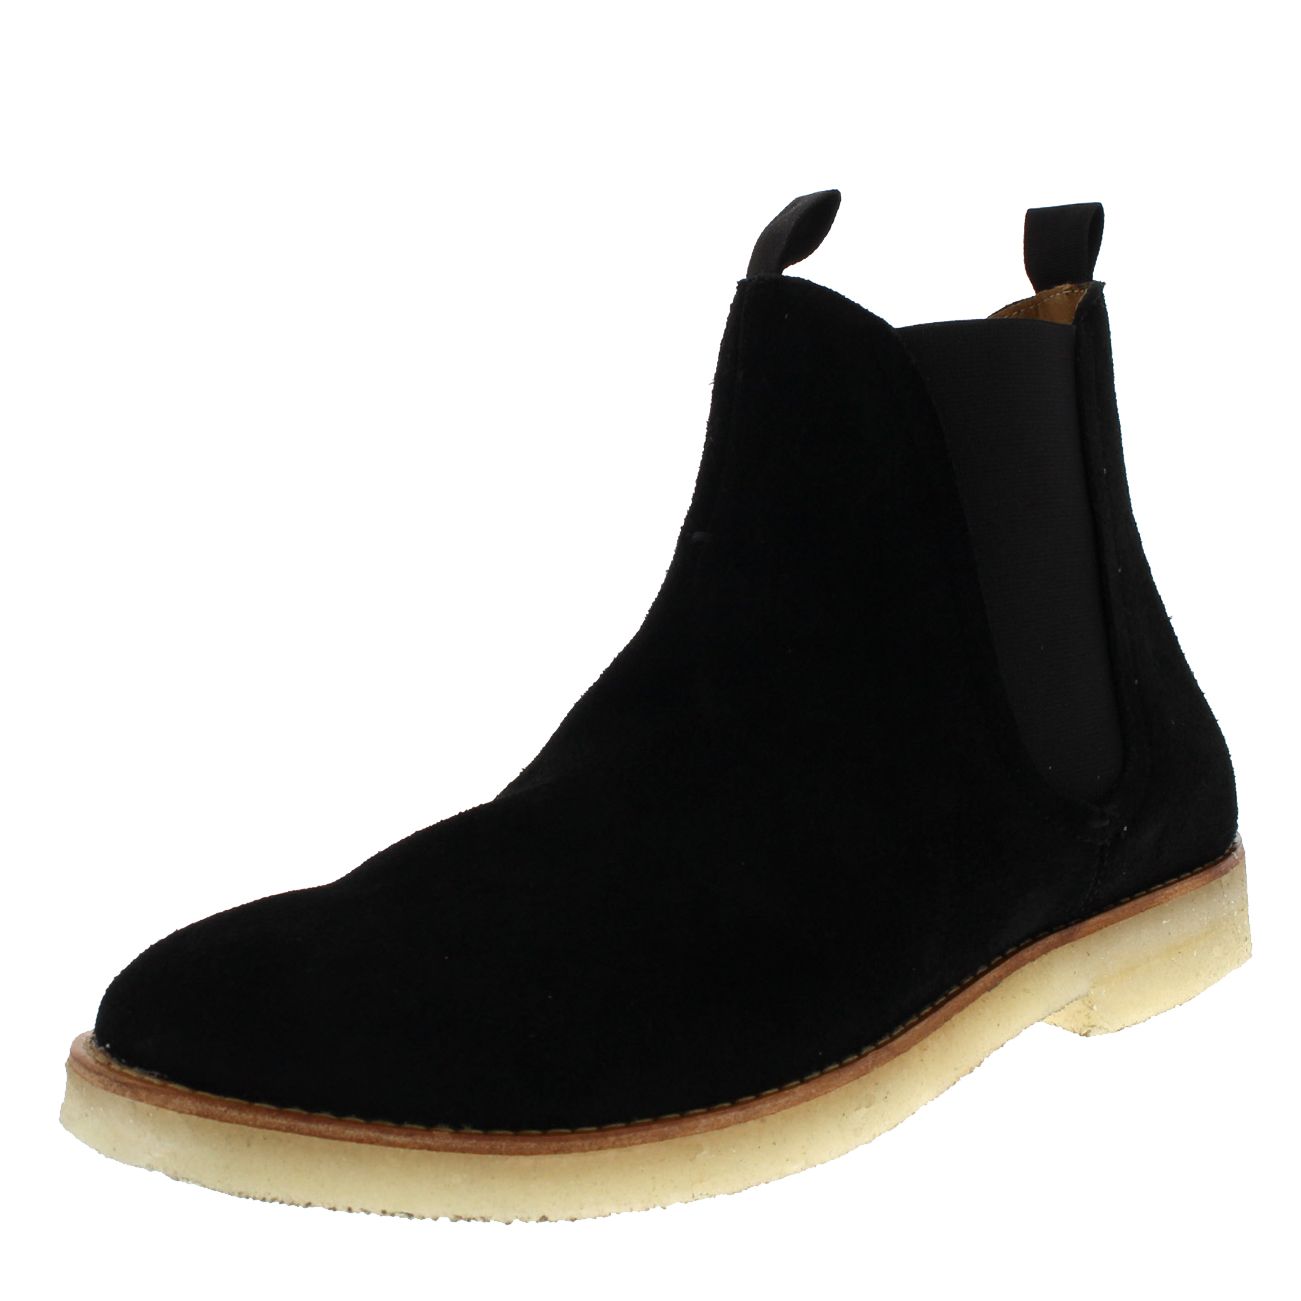 reputable site bbd27 4ca29 Details about Mens H By Hudson Sandgate Smart Suede Work Black Ankle  Chelsea Boots US 7-13